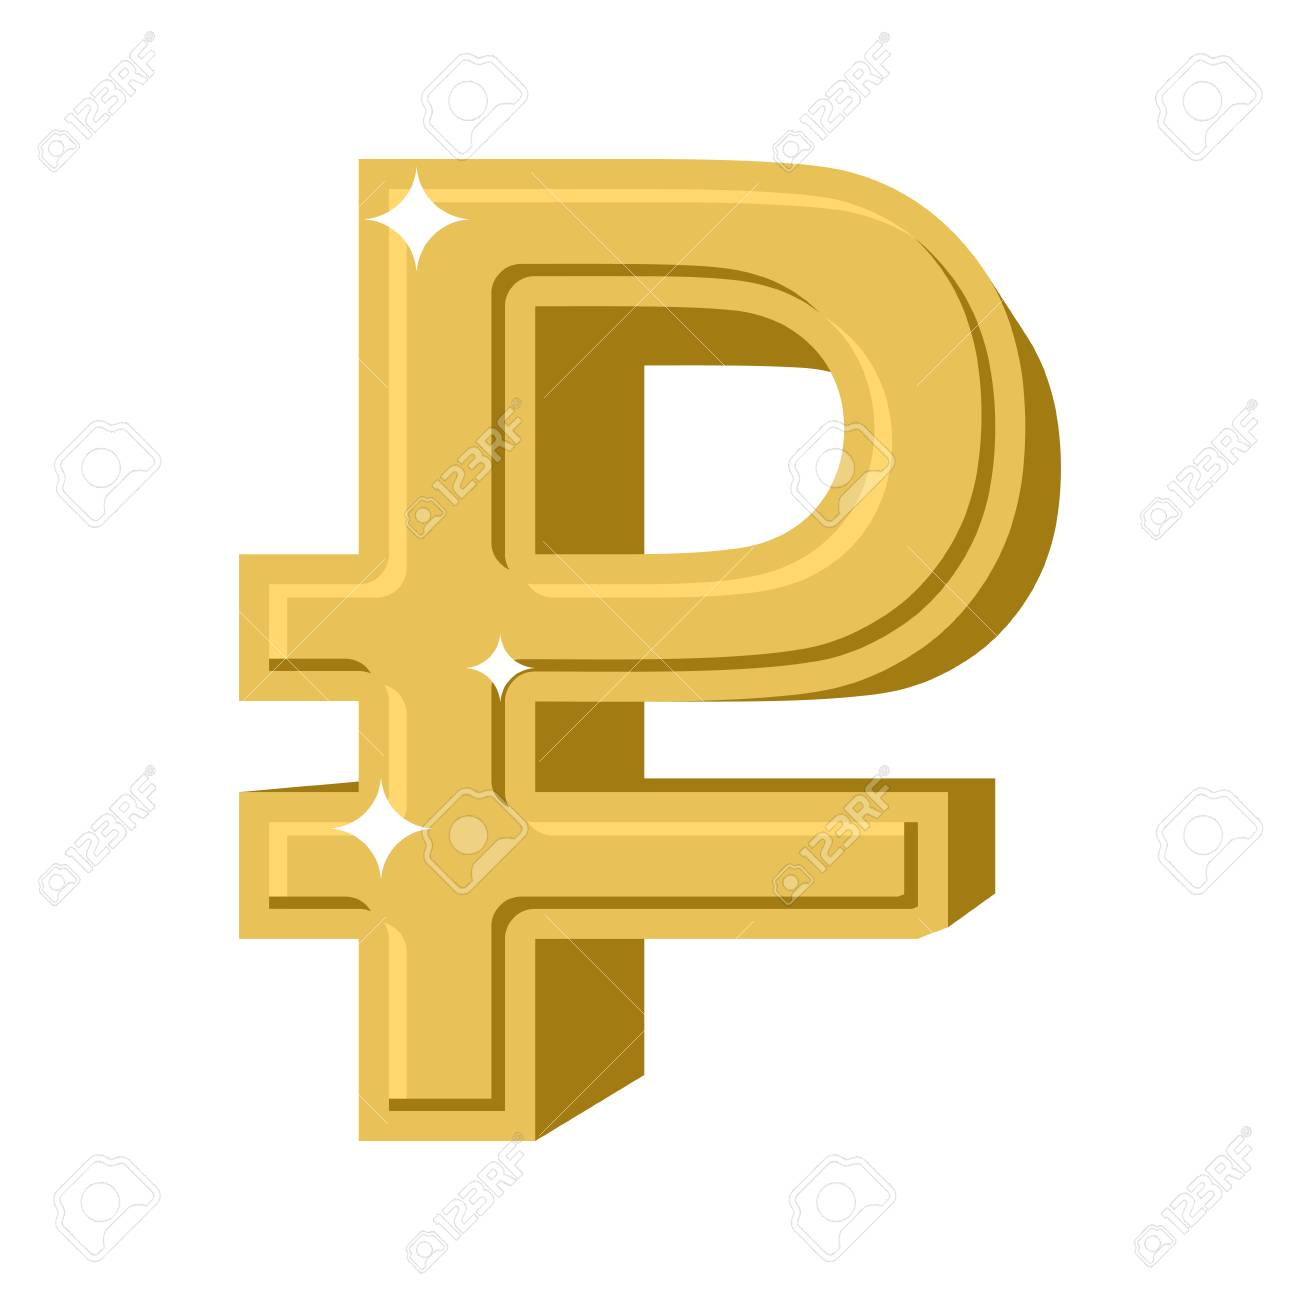 Golden Russian Ruble Symbol Of Money In Russia Cash Sign In